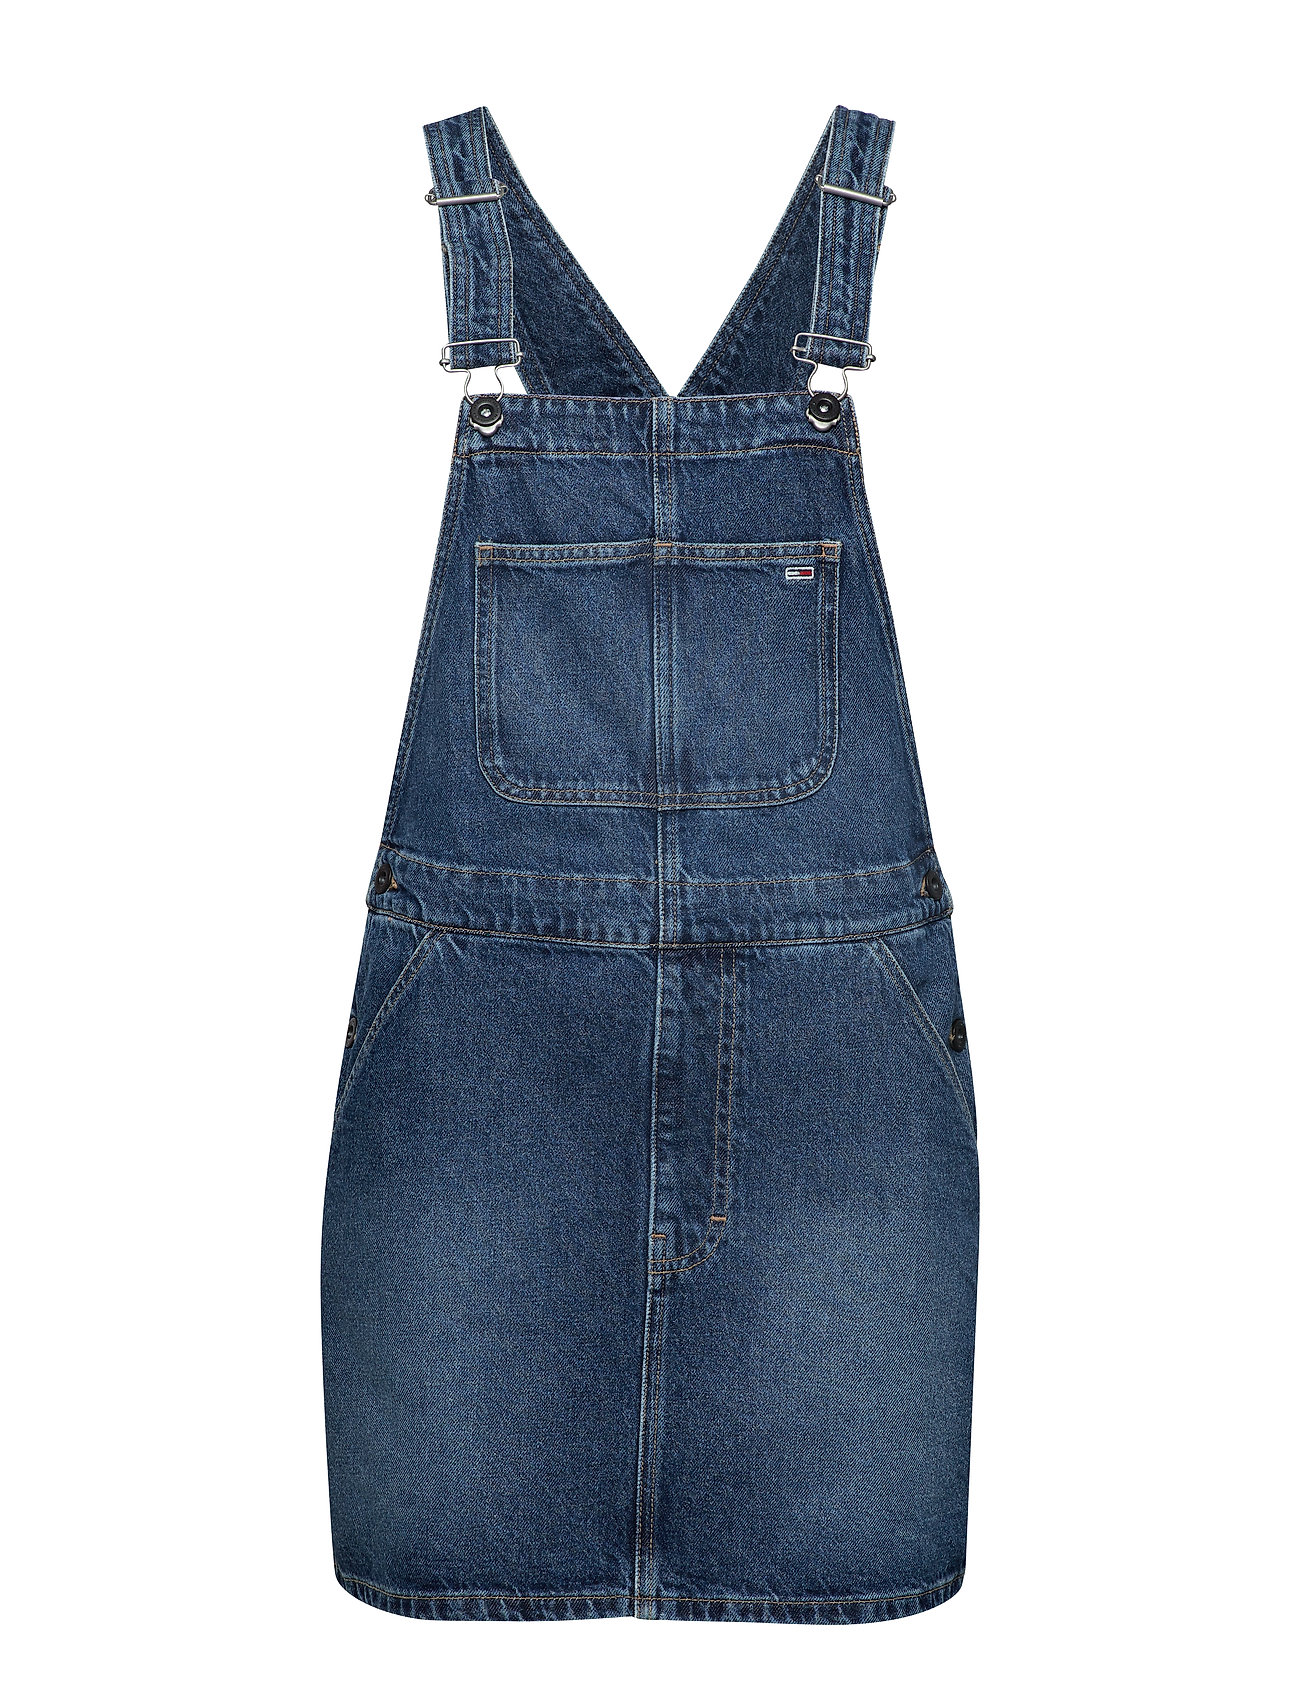 Tjsmtj RigTommy Dungaree Dress Save Mid Jeans Bl qMzVjLUGSp